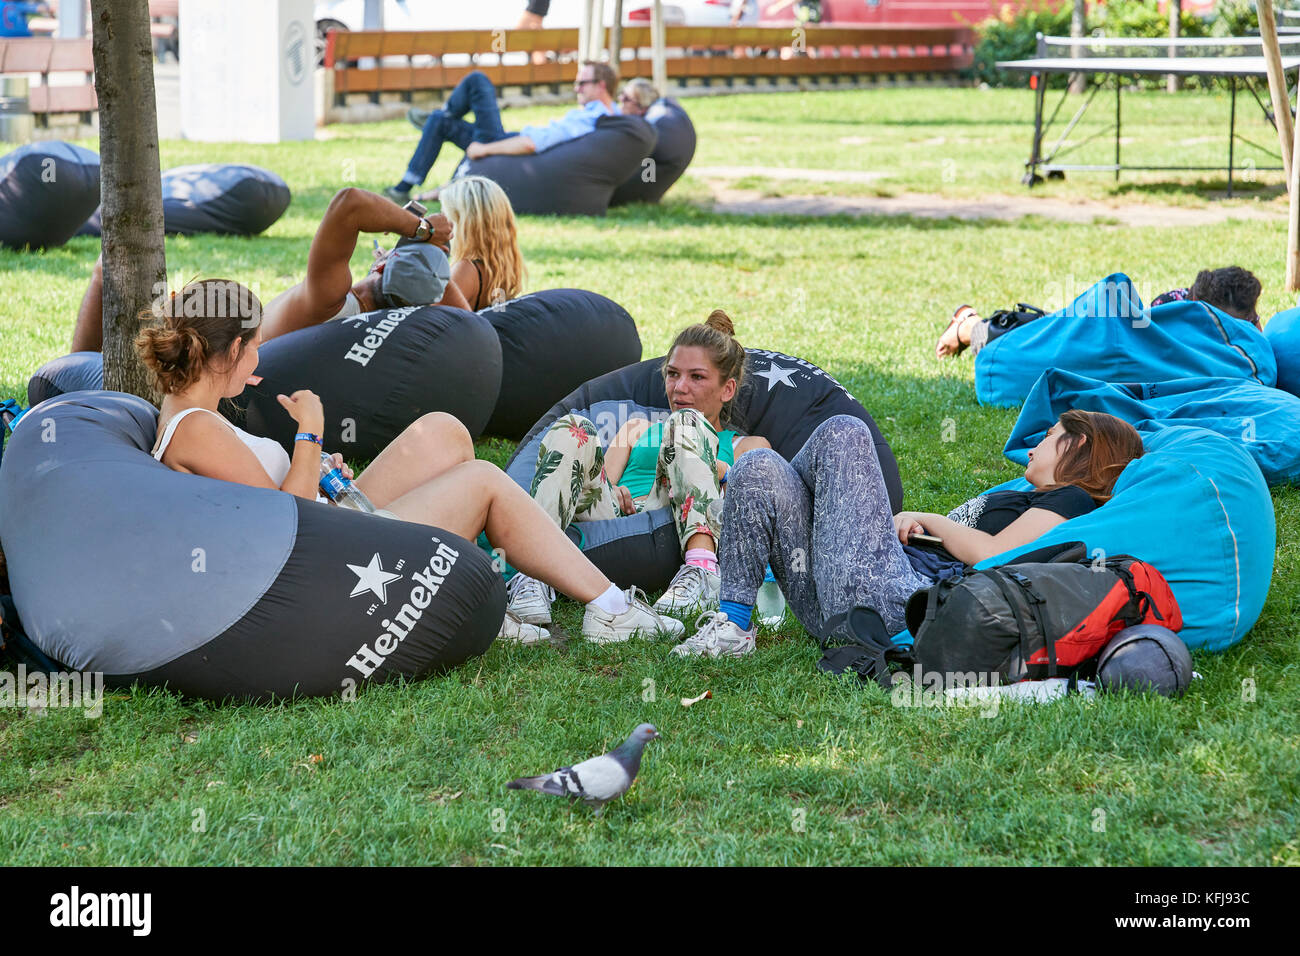 Young people relaxing on bean bags in public park (outdoors) Budapest - Stock Image